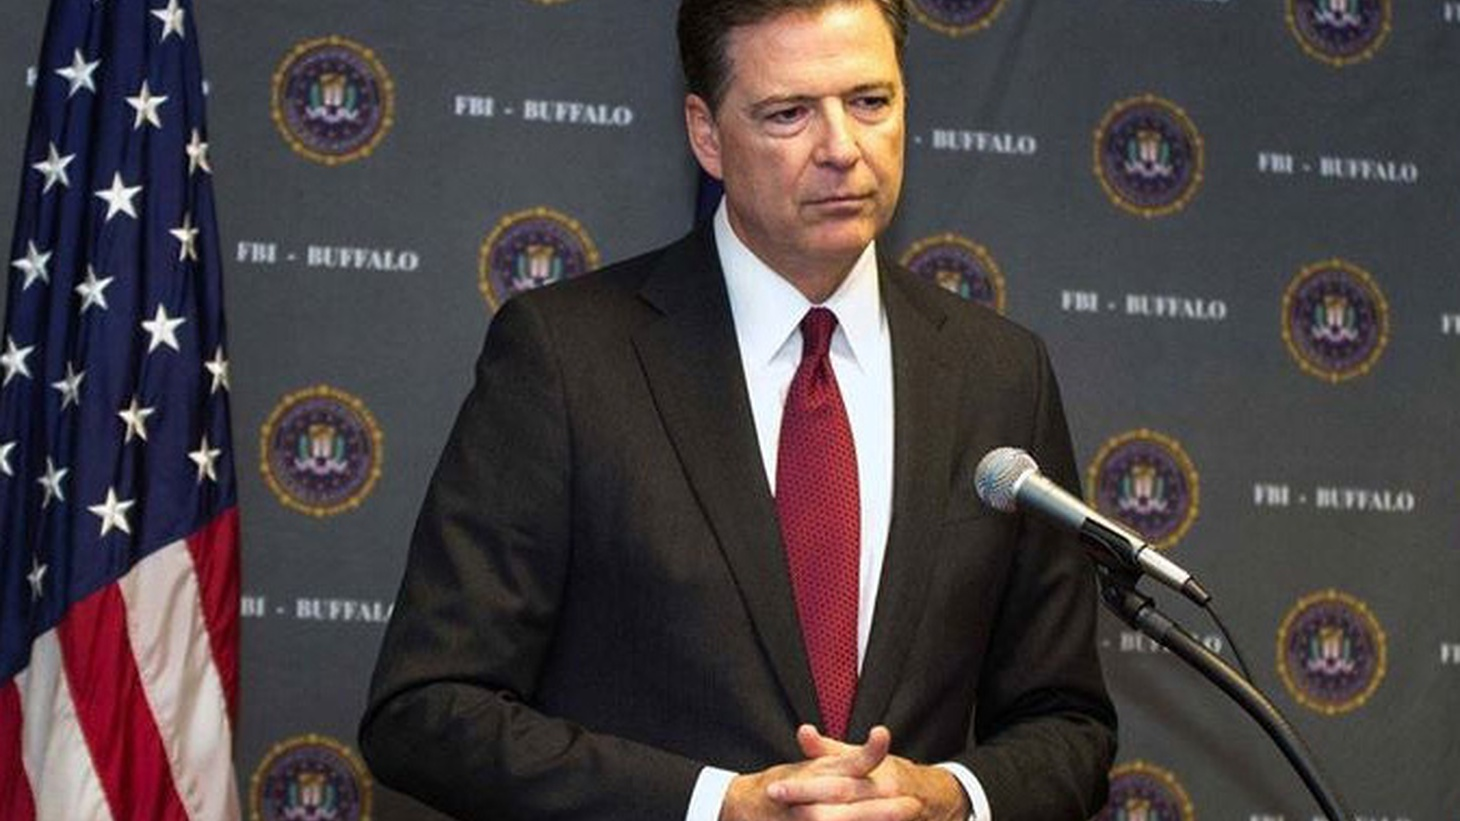 In October, just 10 days before the election, FBI Director, James Comey sent a letter to select Congressional leaders, announcing that the criminal investigation into Hillary Rodham Clinton's private email server had been re-opened. That investigation went nowhere.